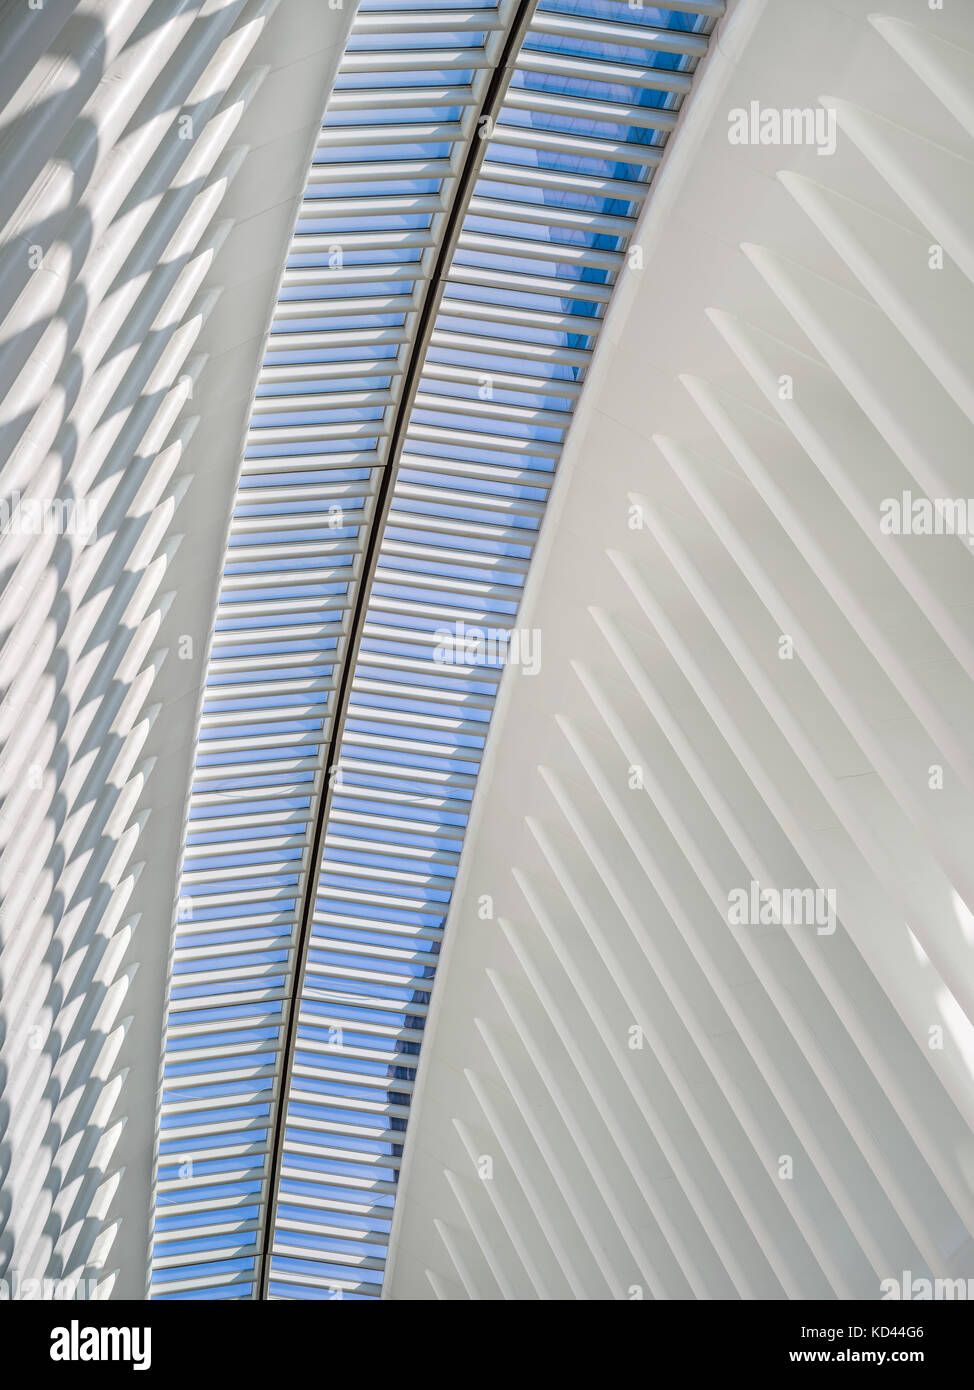 Interior view of the Oculus, Westfield World Trade Center. Tranportation hub designed by Santiago Calatrava. Manhattan - Stock Image